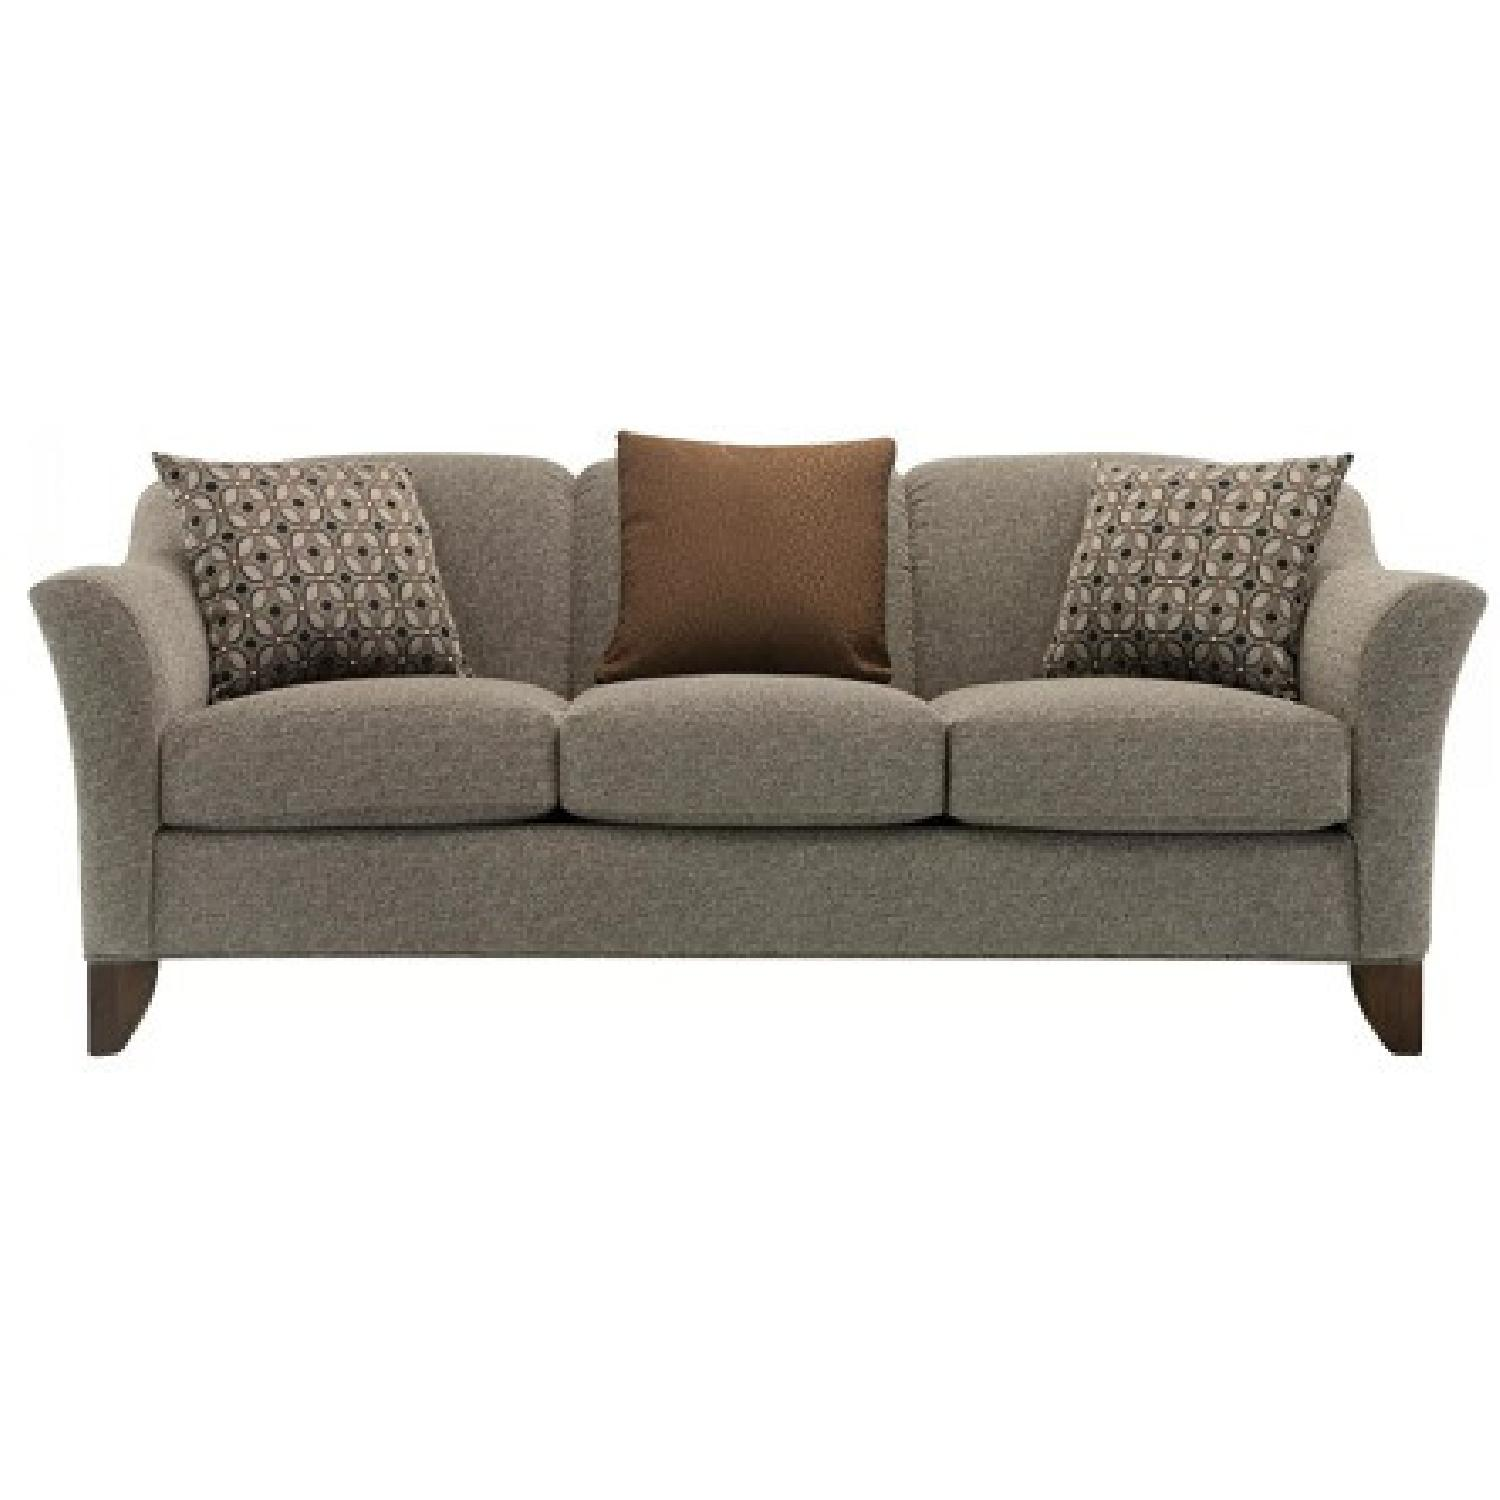 Raymour & FlaniganMuted Hunter Green Chenille 3-Seater Couch - image-6